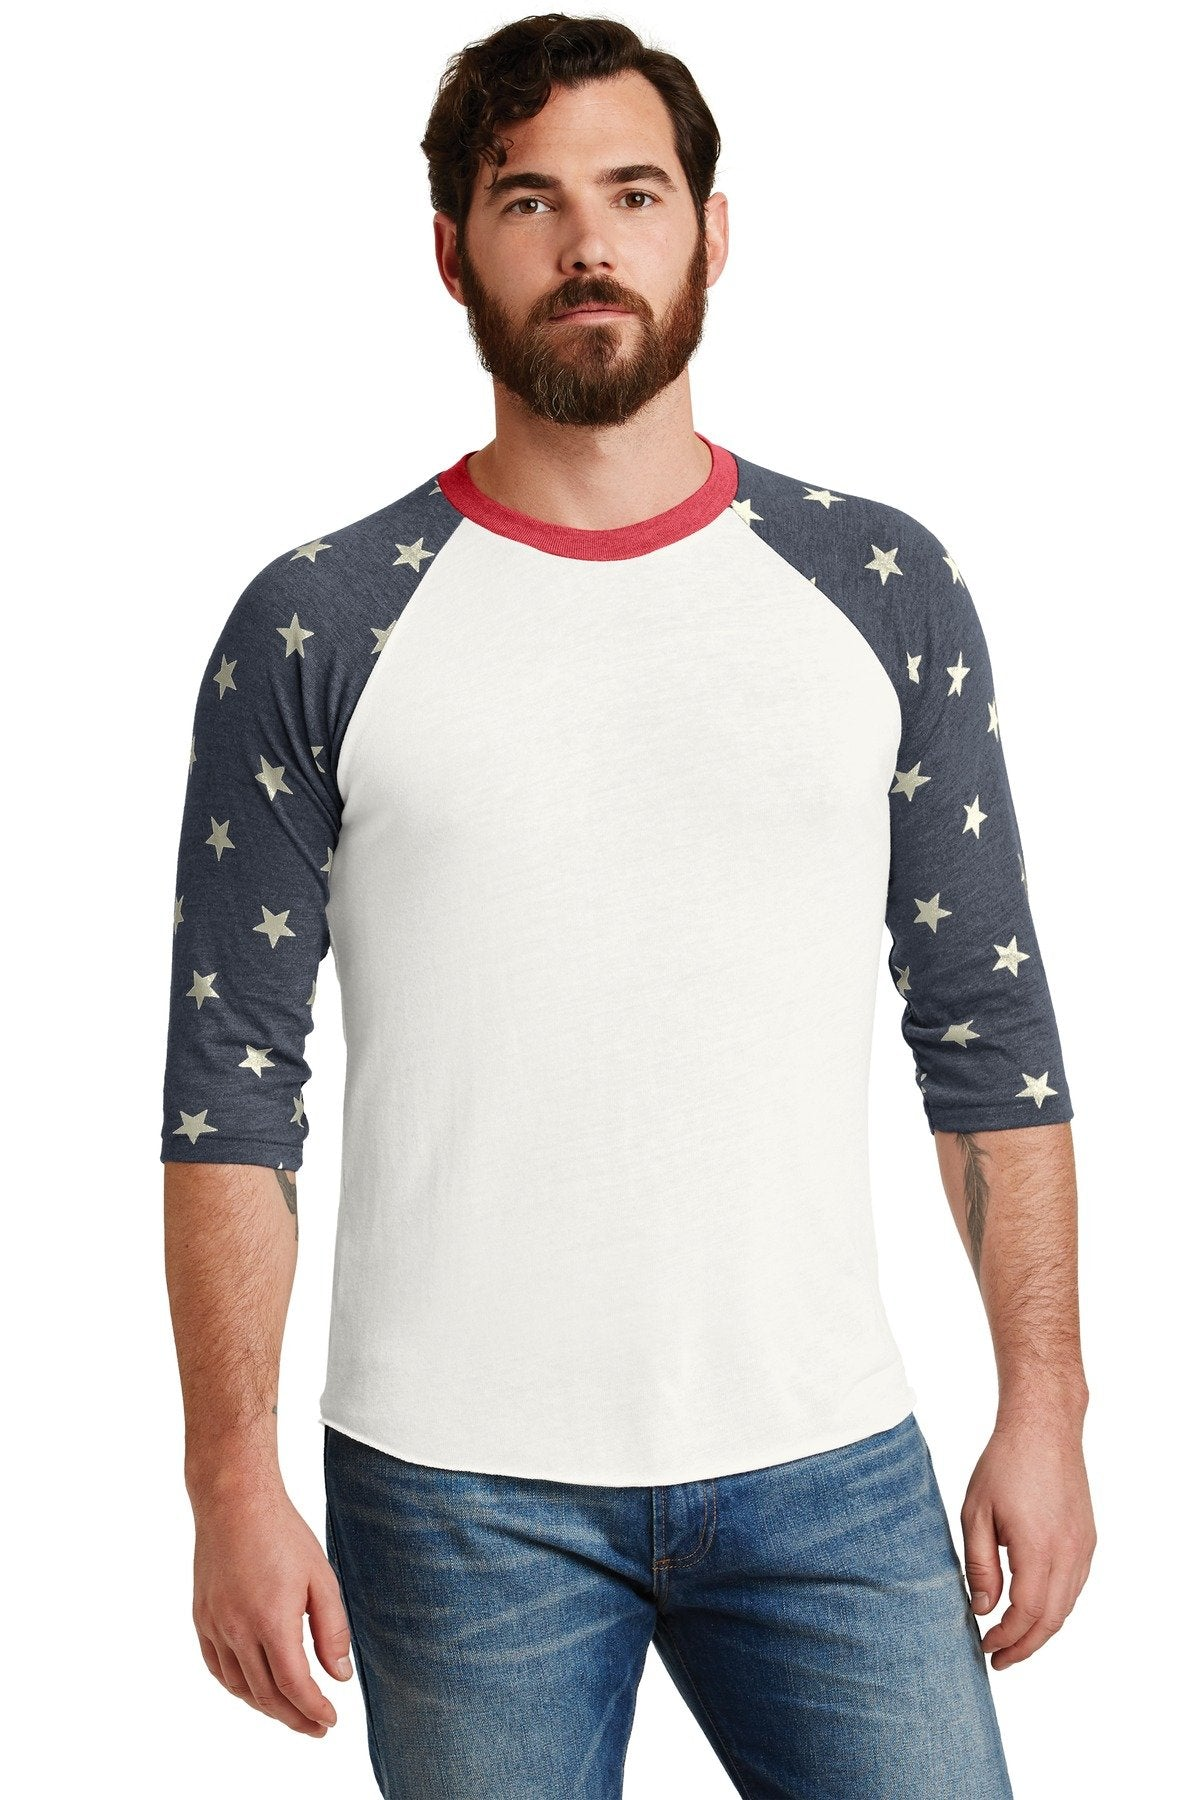 Stars - Alternative Apparel AA2089